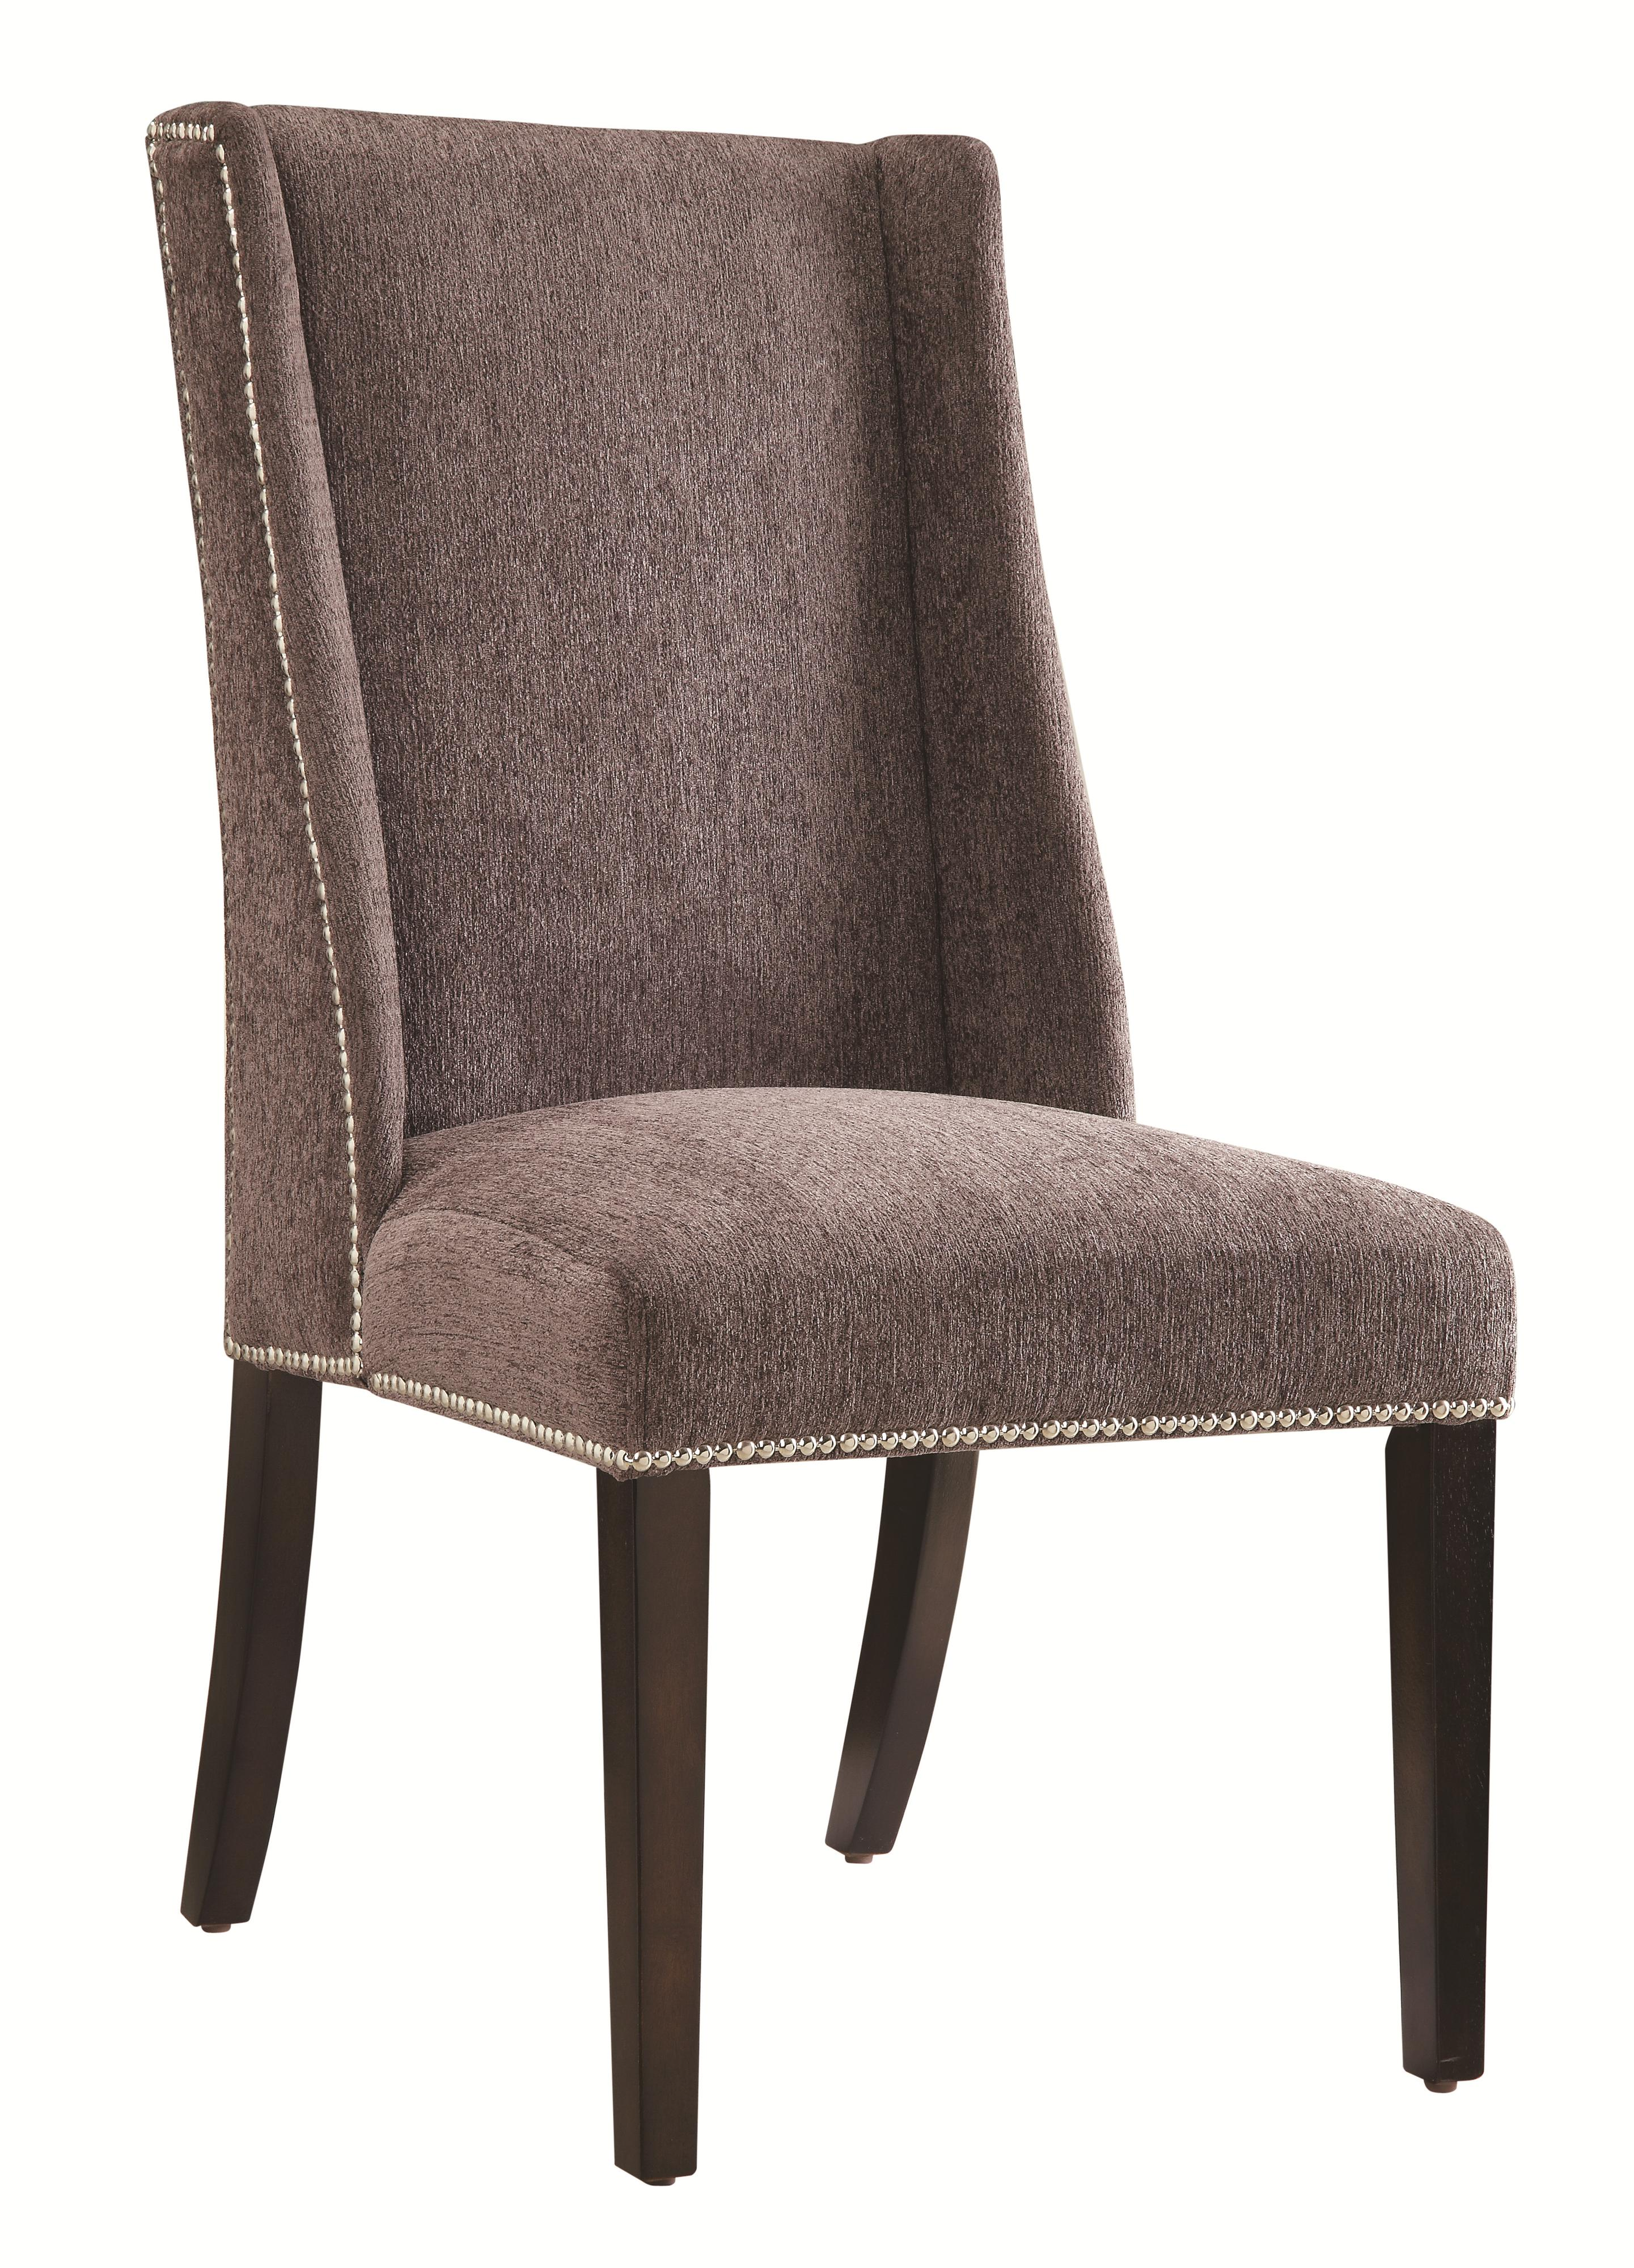 Coaster Accent Seating Accent Chair - Item Number: 902505